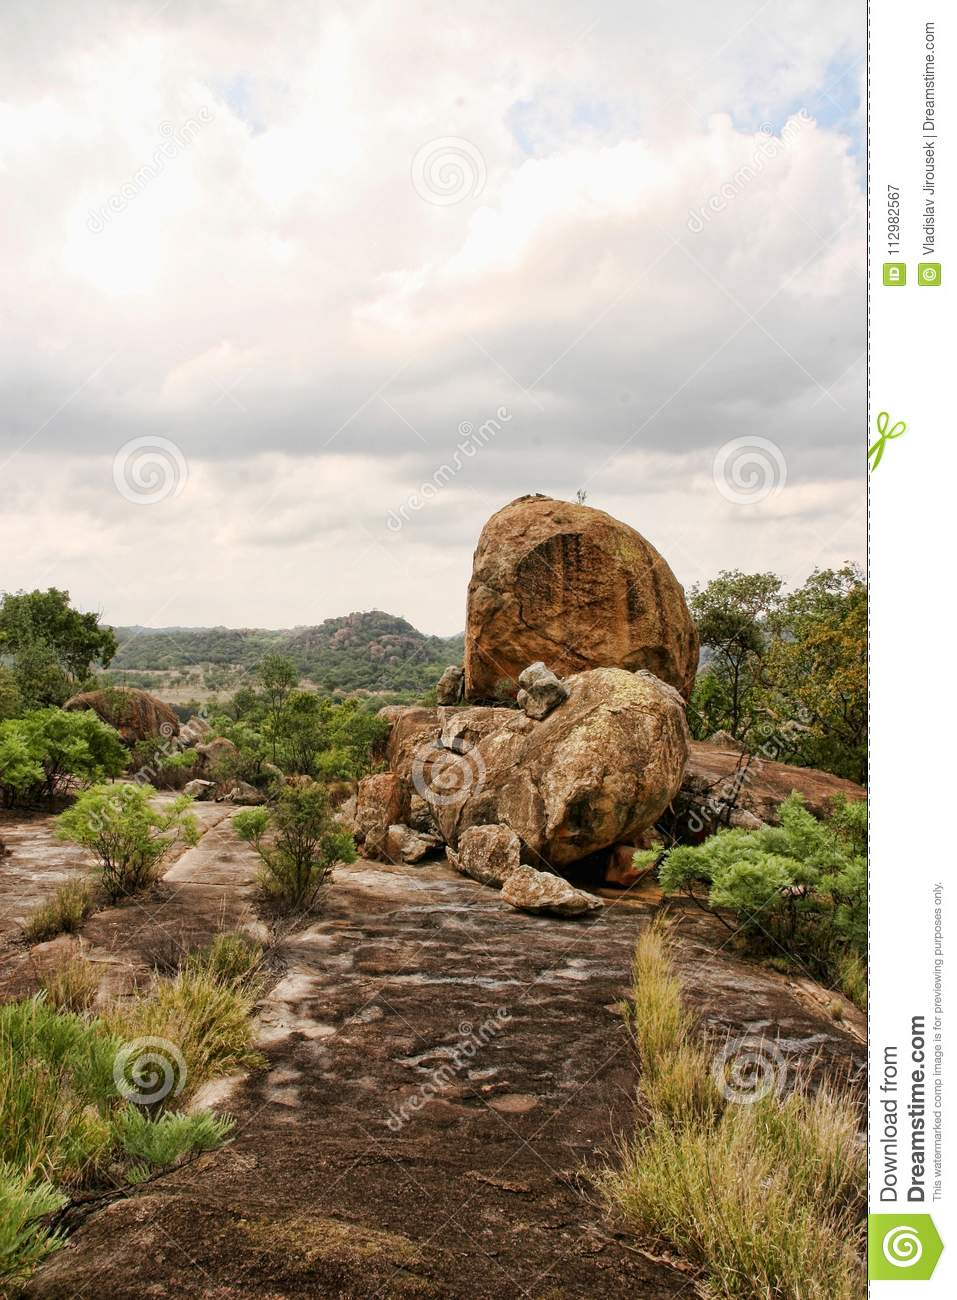 The picturesque rock formations of the Matopos National Park, Zimbabwe